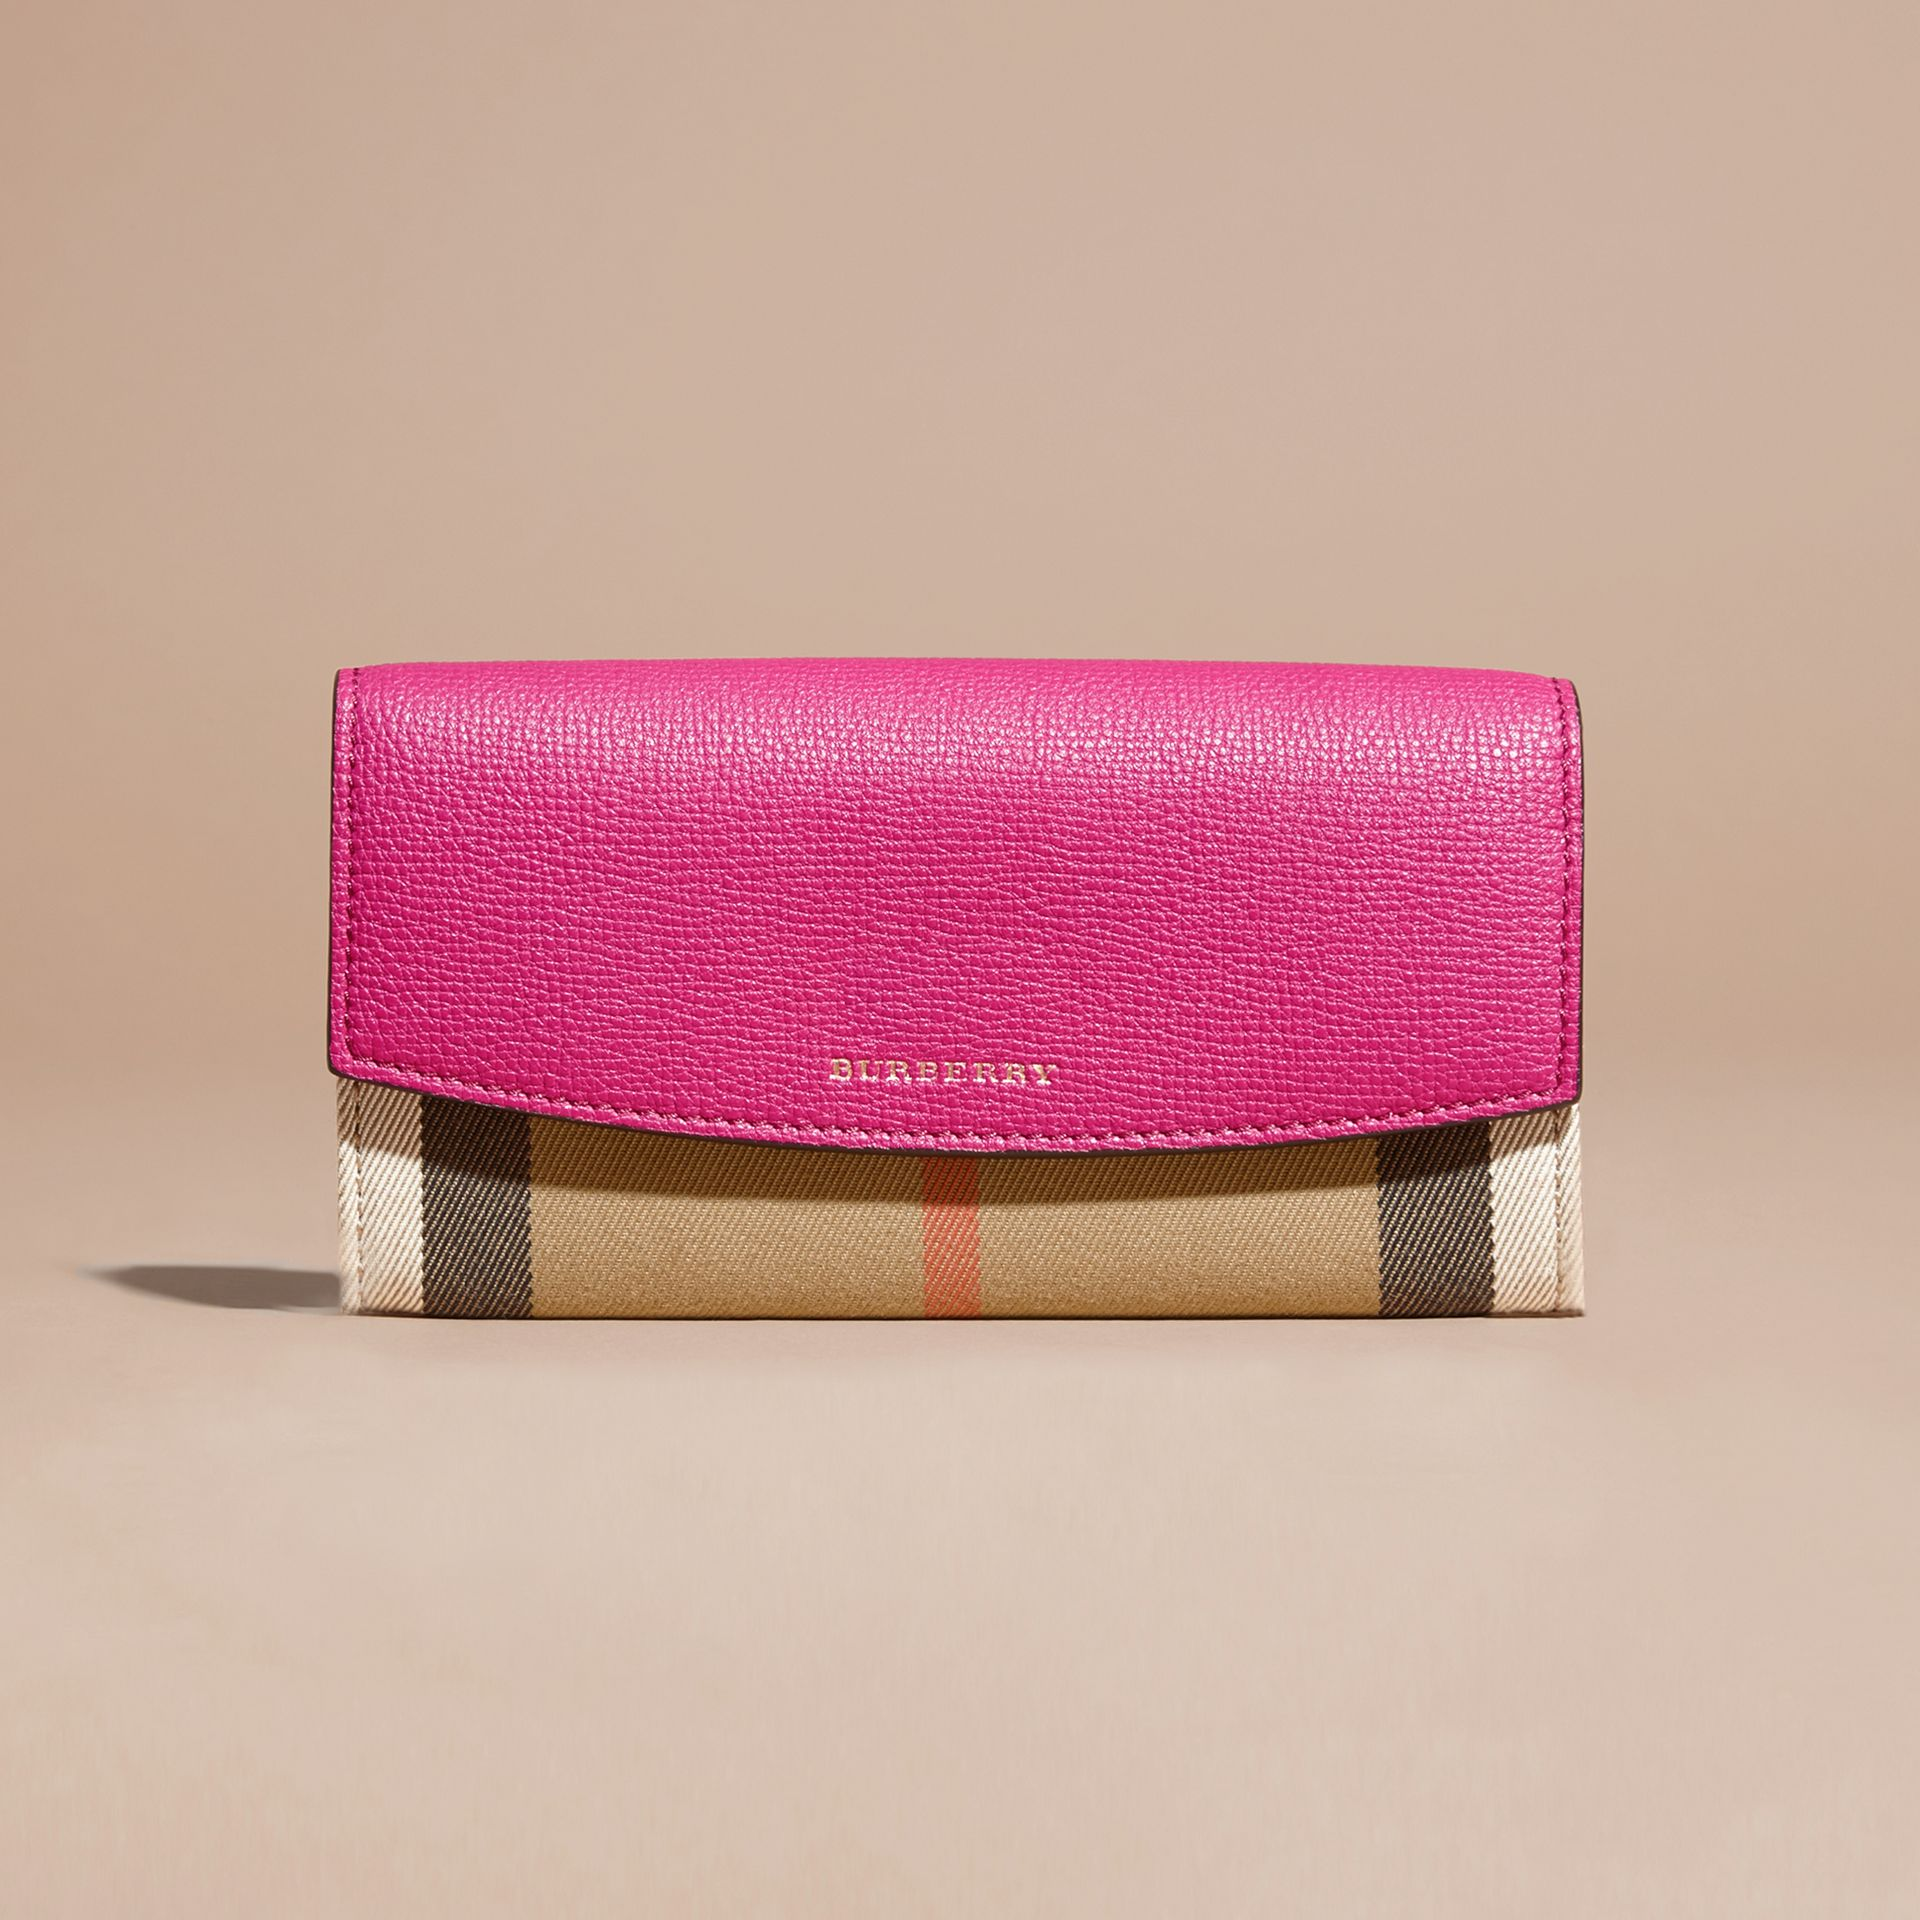 Brilliant fuchsia House Check and Leather Continental Wallet Brilliant Fuchsia - gallery image 6